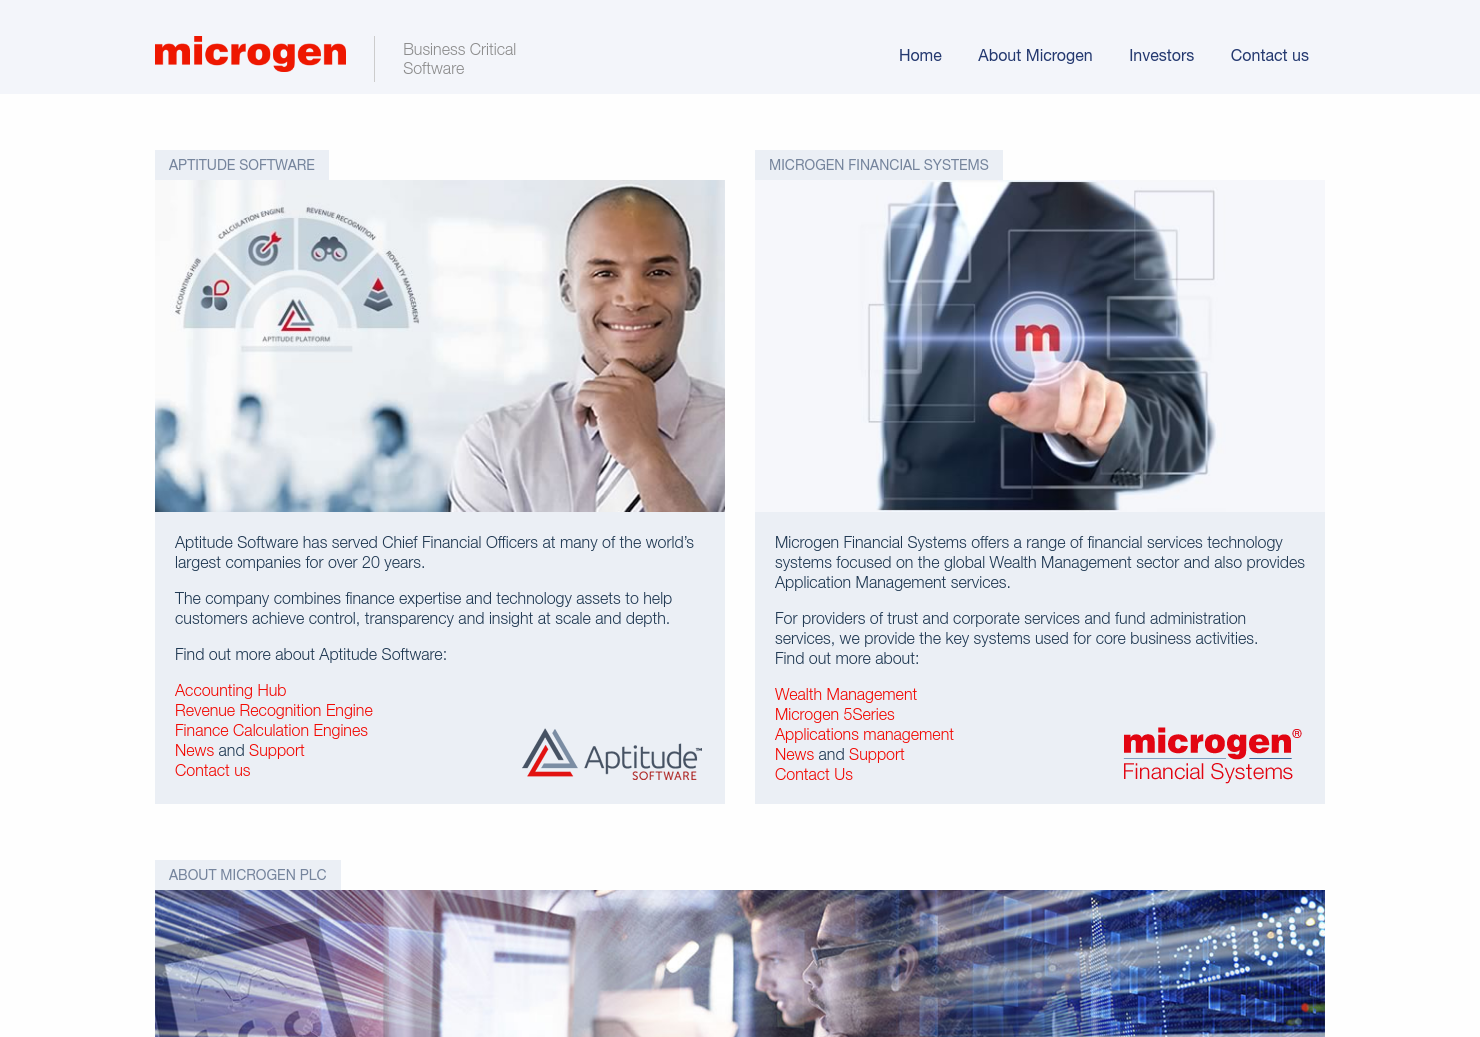 Microgen Home Page